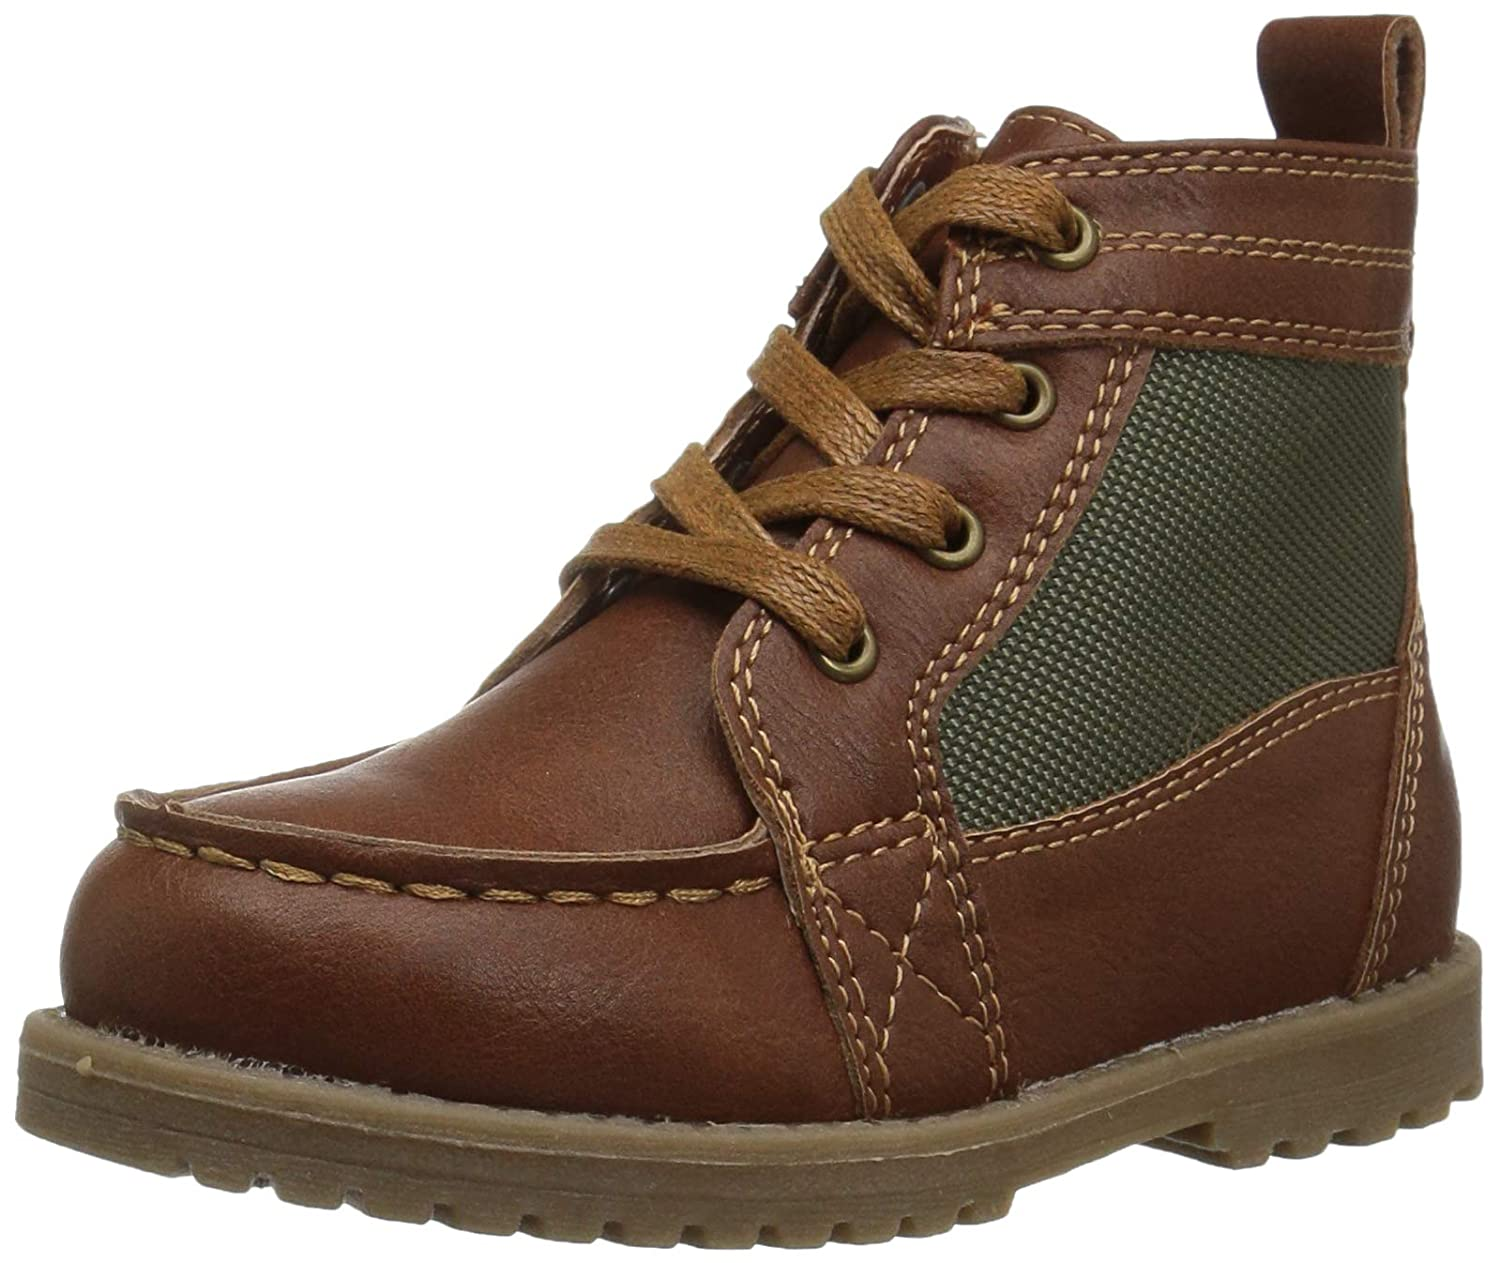 The Childrens Place Boys Fashion Boot TAN TDDLR 6 Child US Toddler